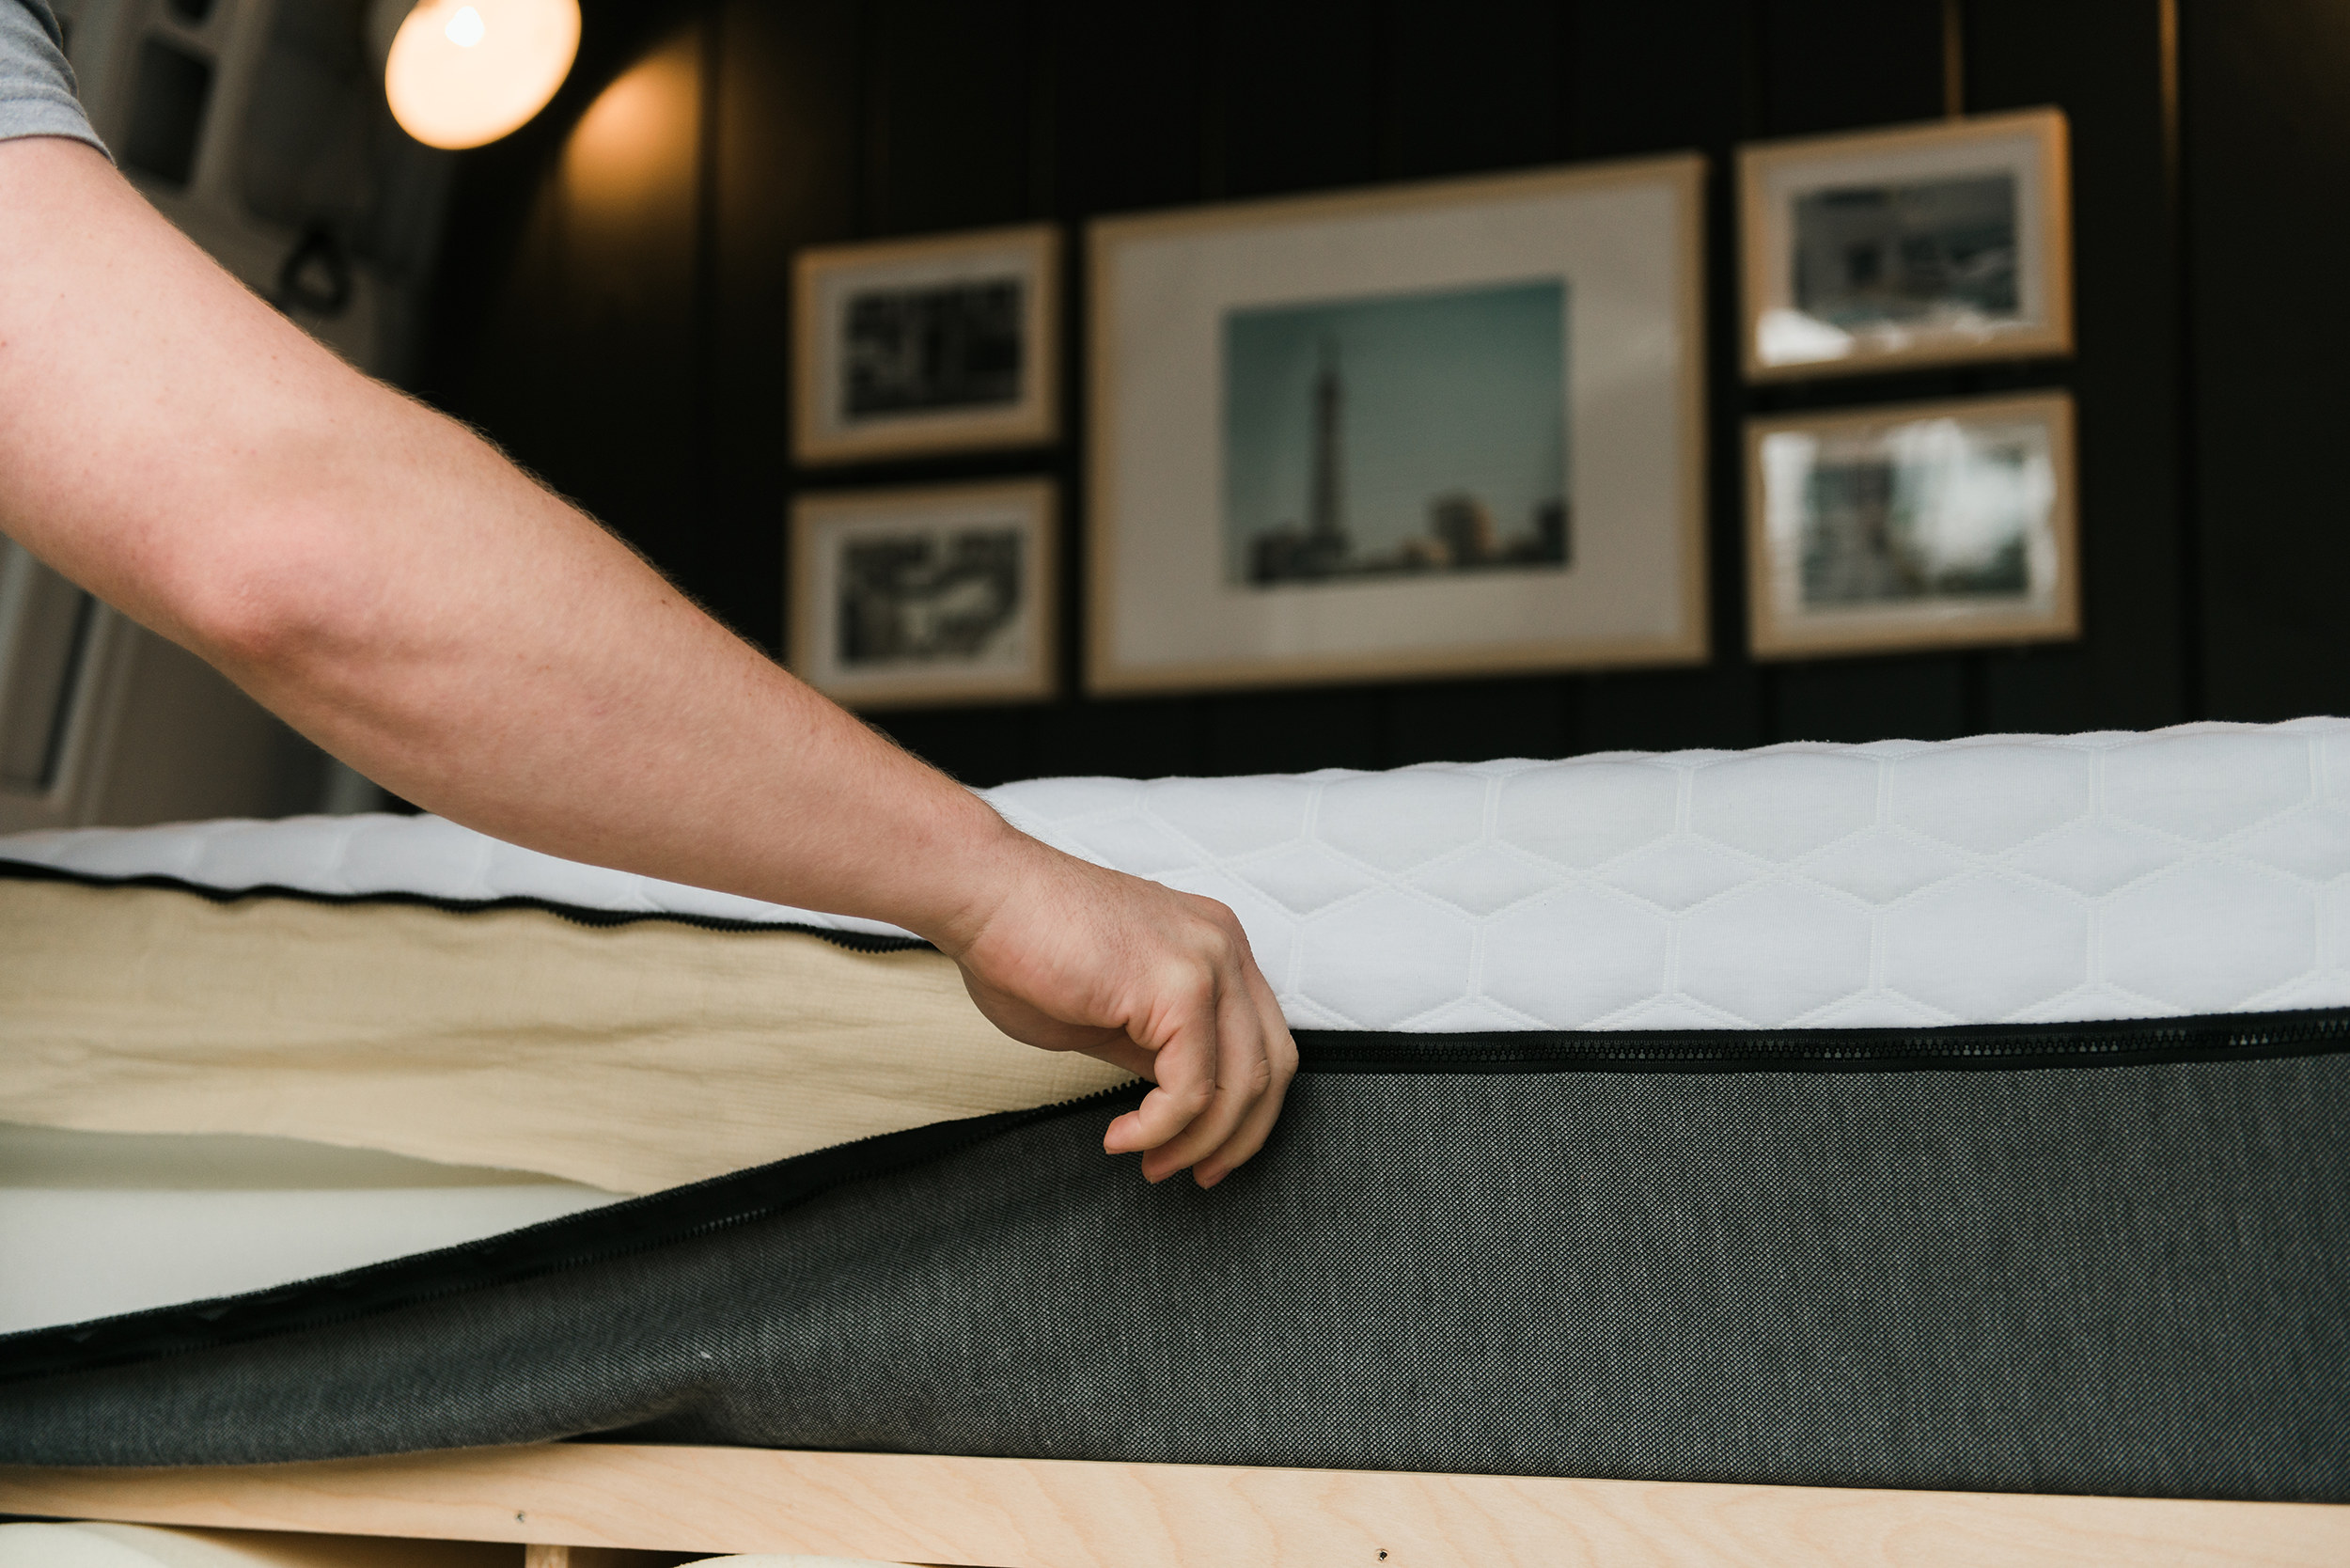 Industry Grade Mattresses - With a Personal Touch.